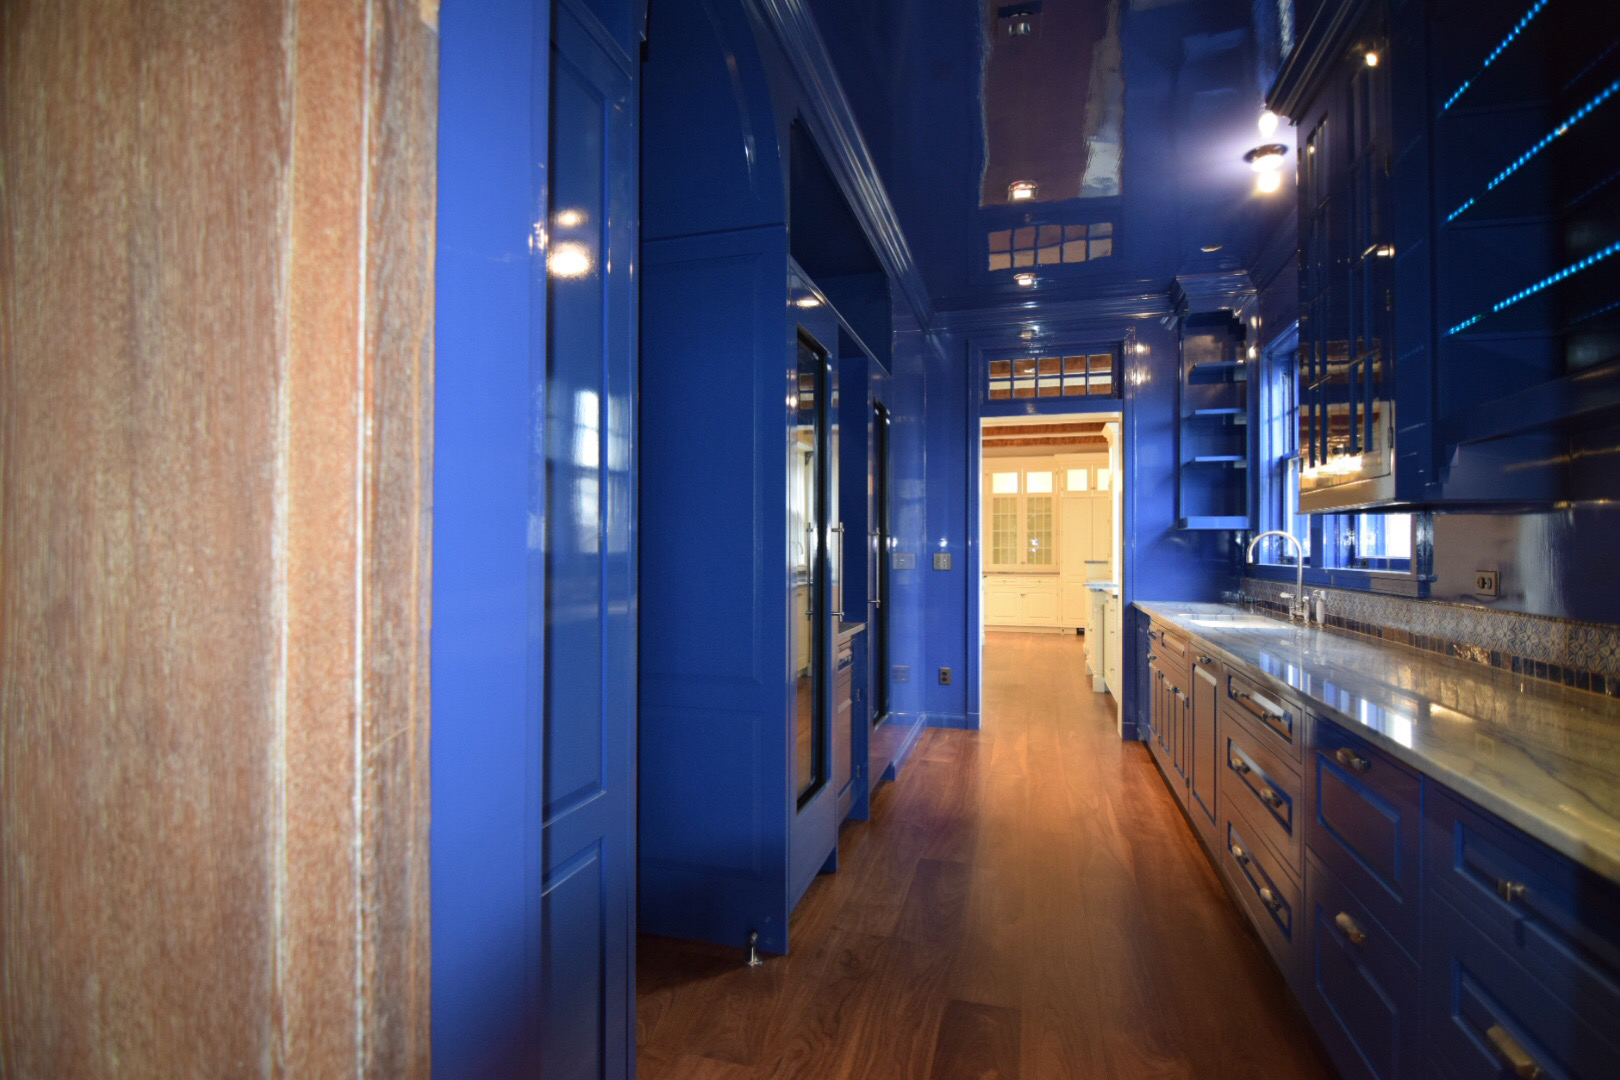 butlers-pantry-kitchen-with-hard-maple-inset-raised-panel-cabinetry-in-floor-to-ceiling-high-gloss-blue.jpg